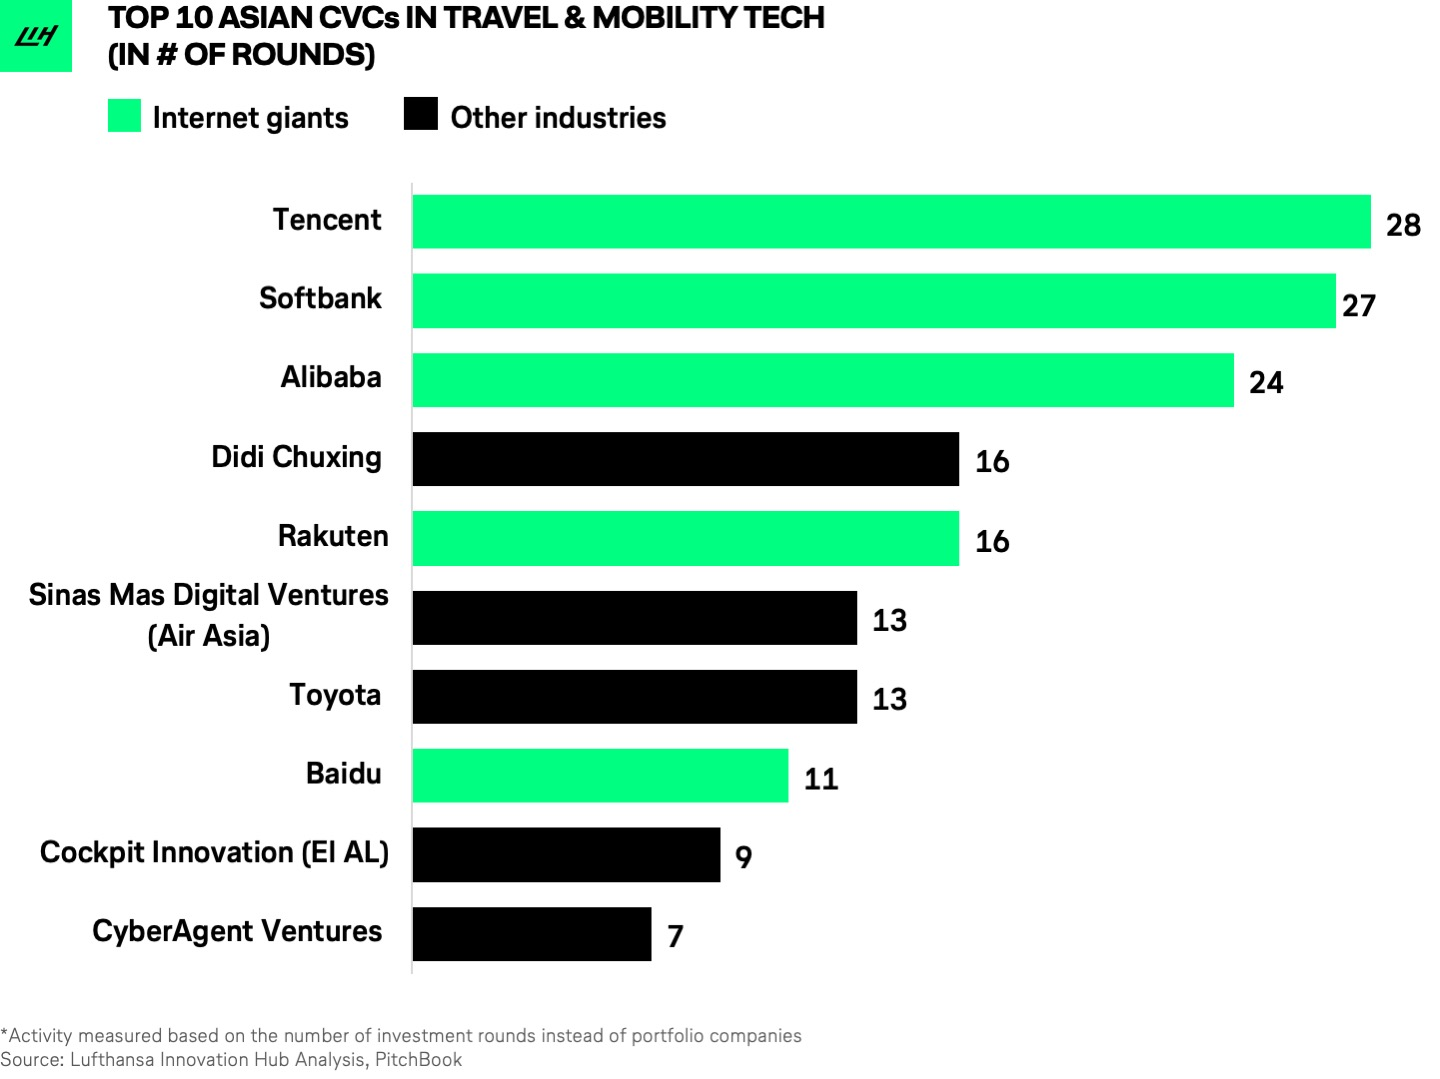 Corporate venture capital in Travel & Mobility Tech - Travel